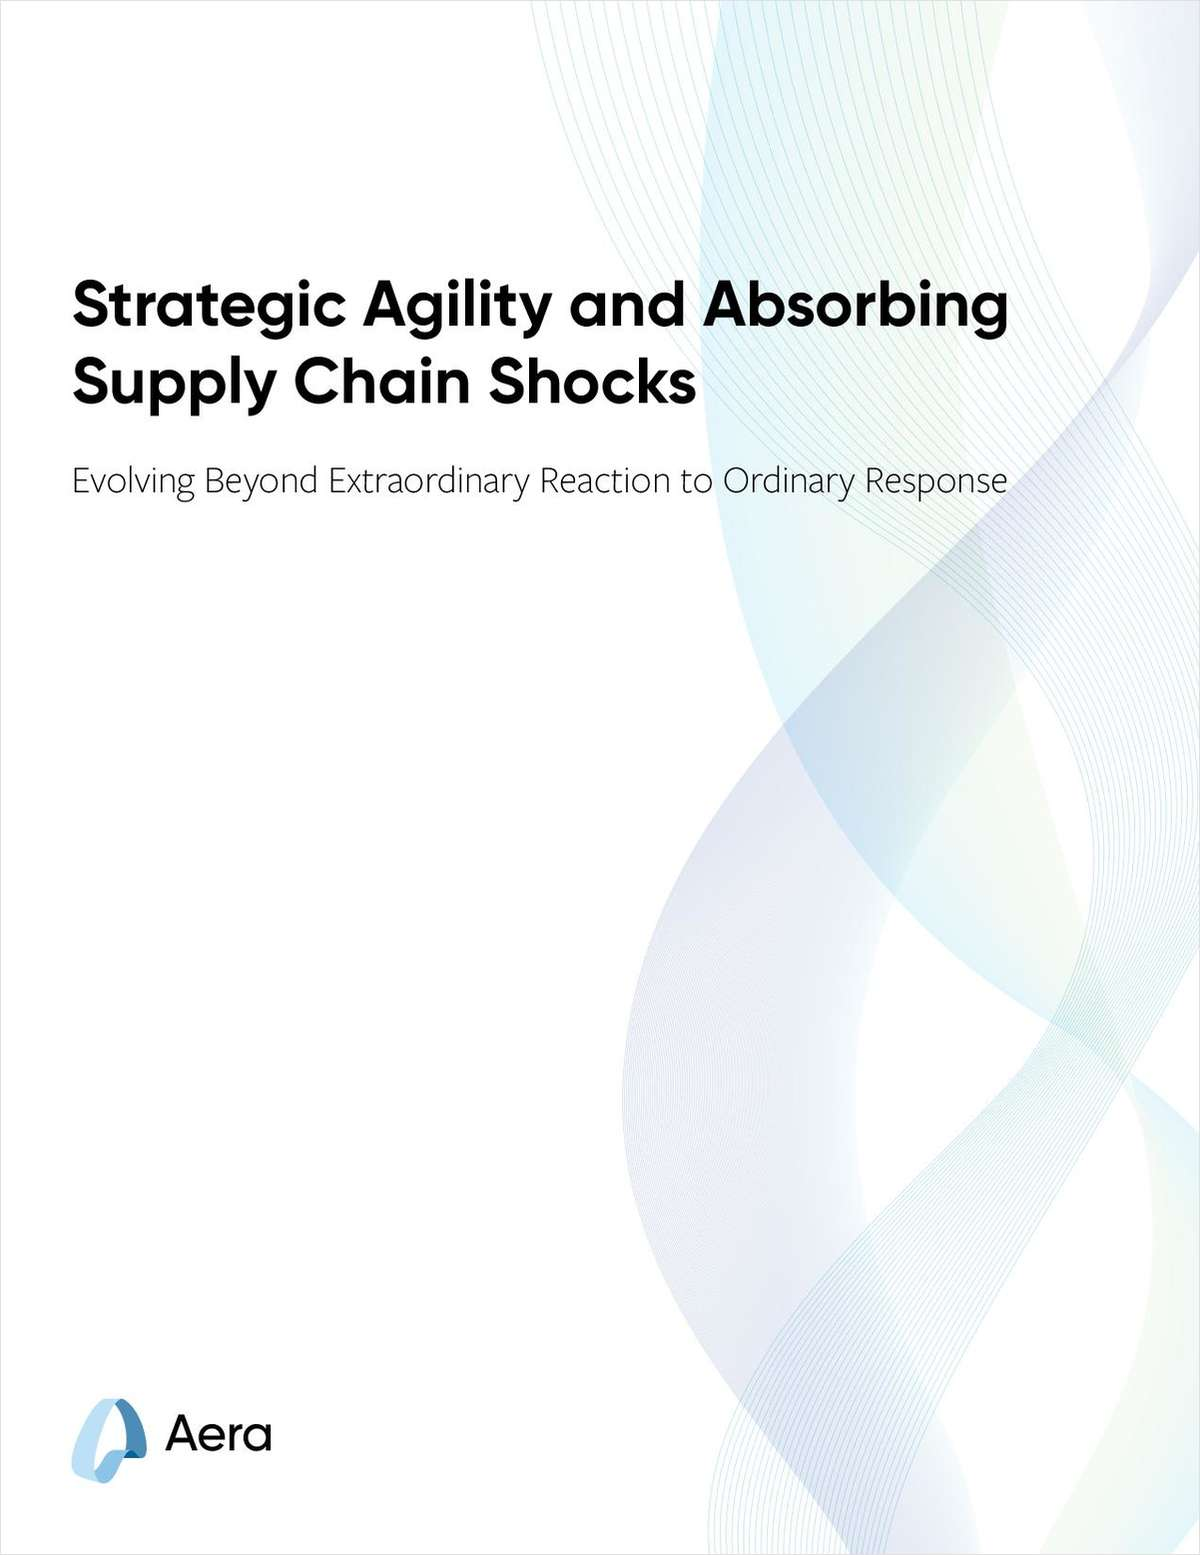 Strategic Agility and Absorbing Supply Chain Shocks